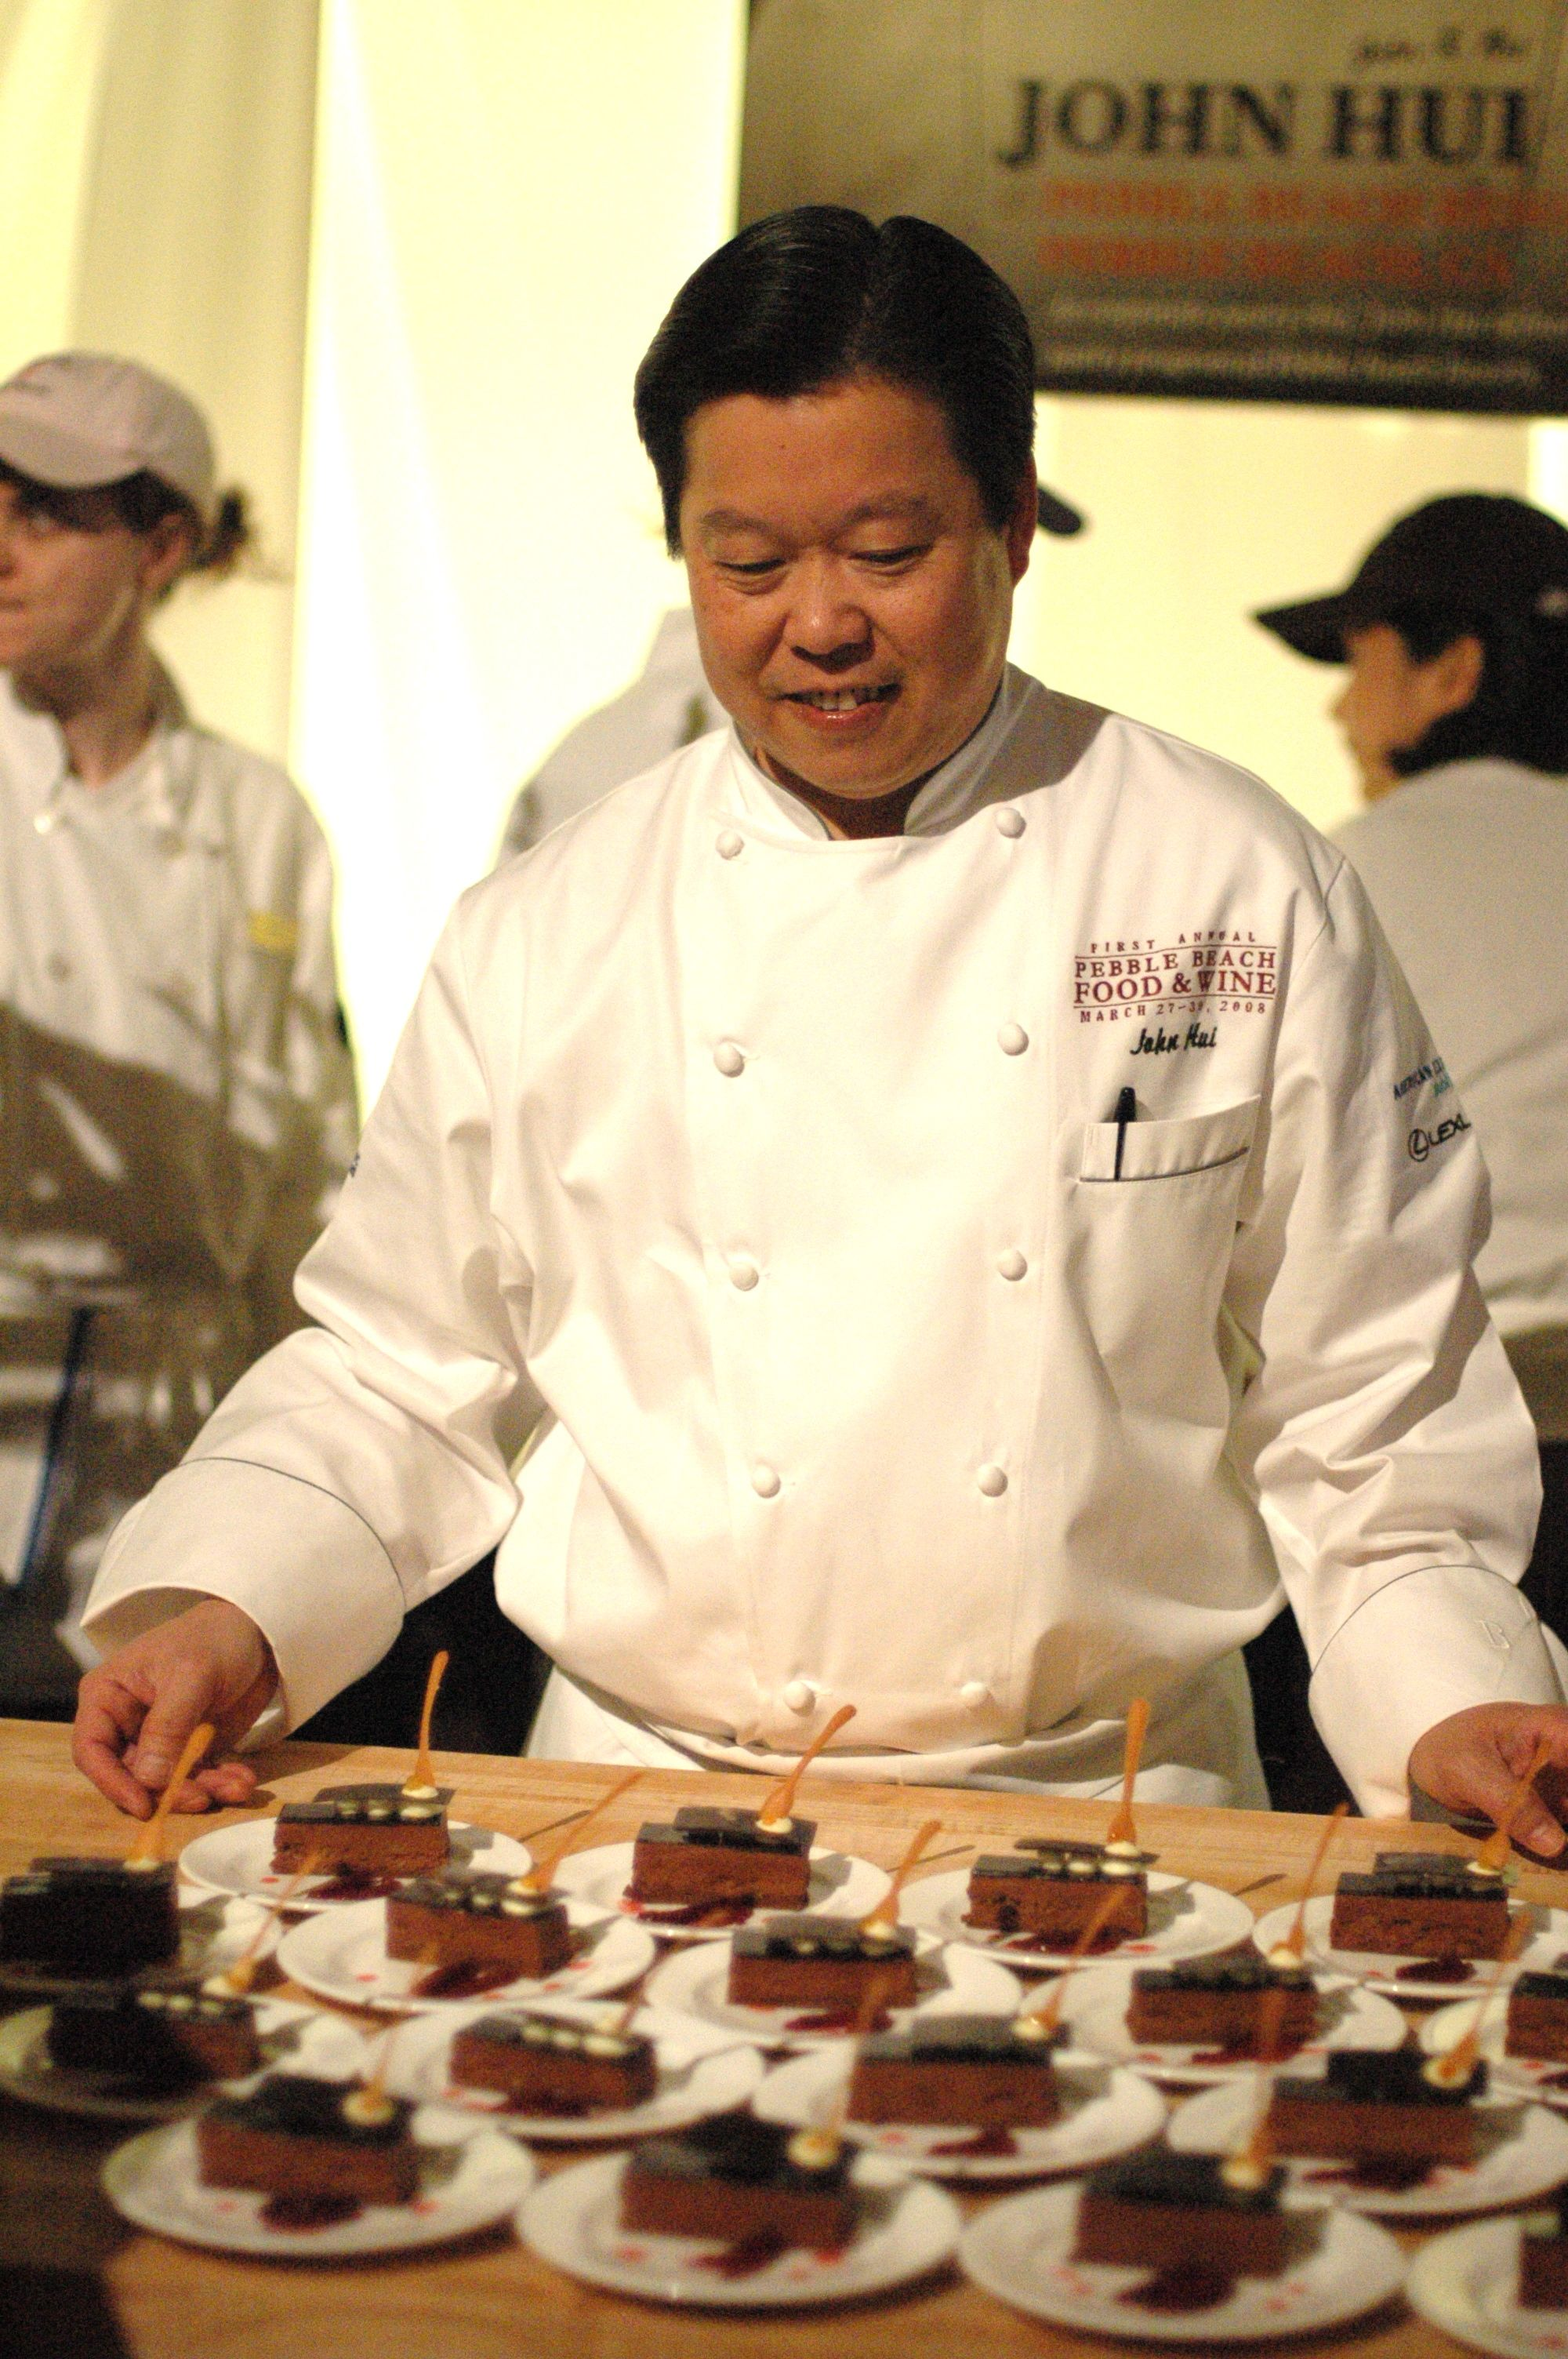 John Hui, Pastry Chef of Pebble Beach Resorts